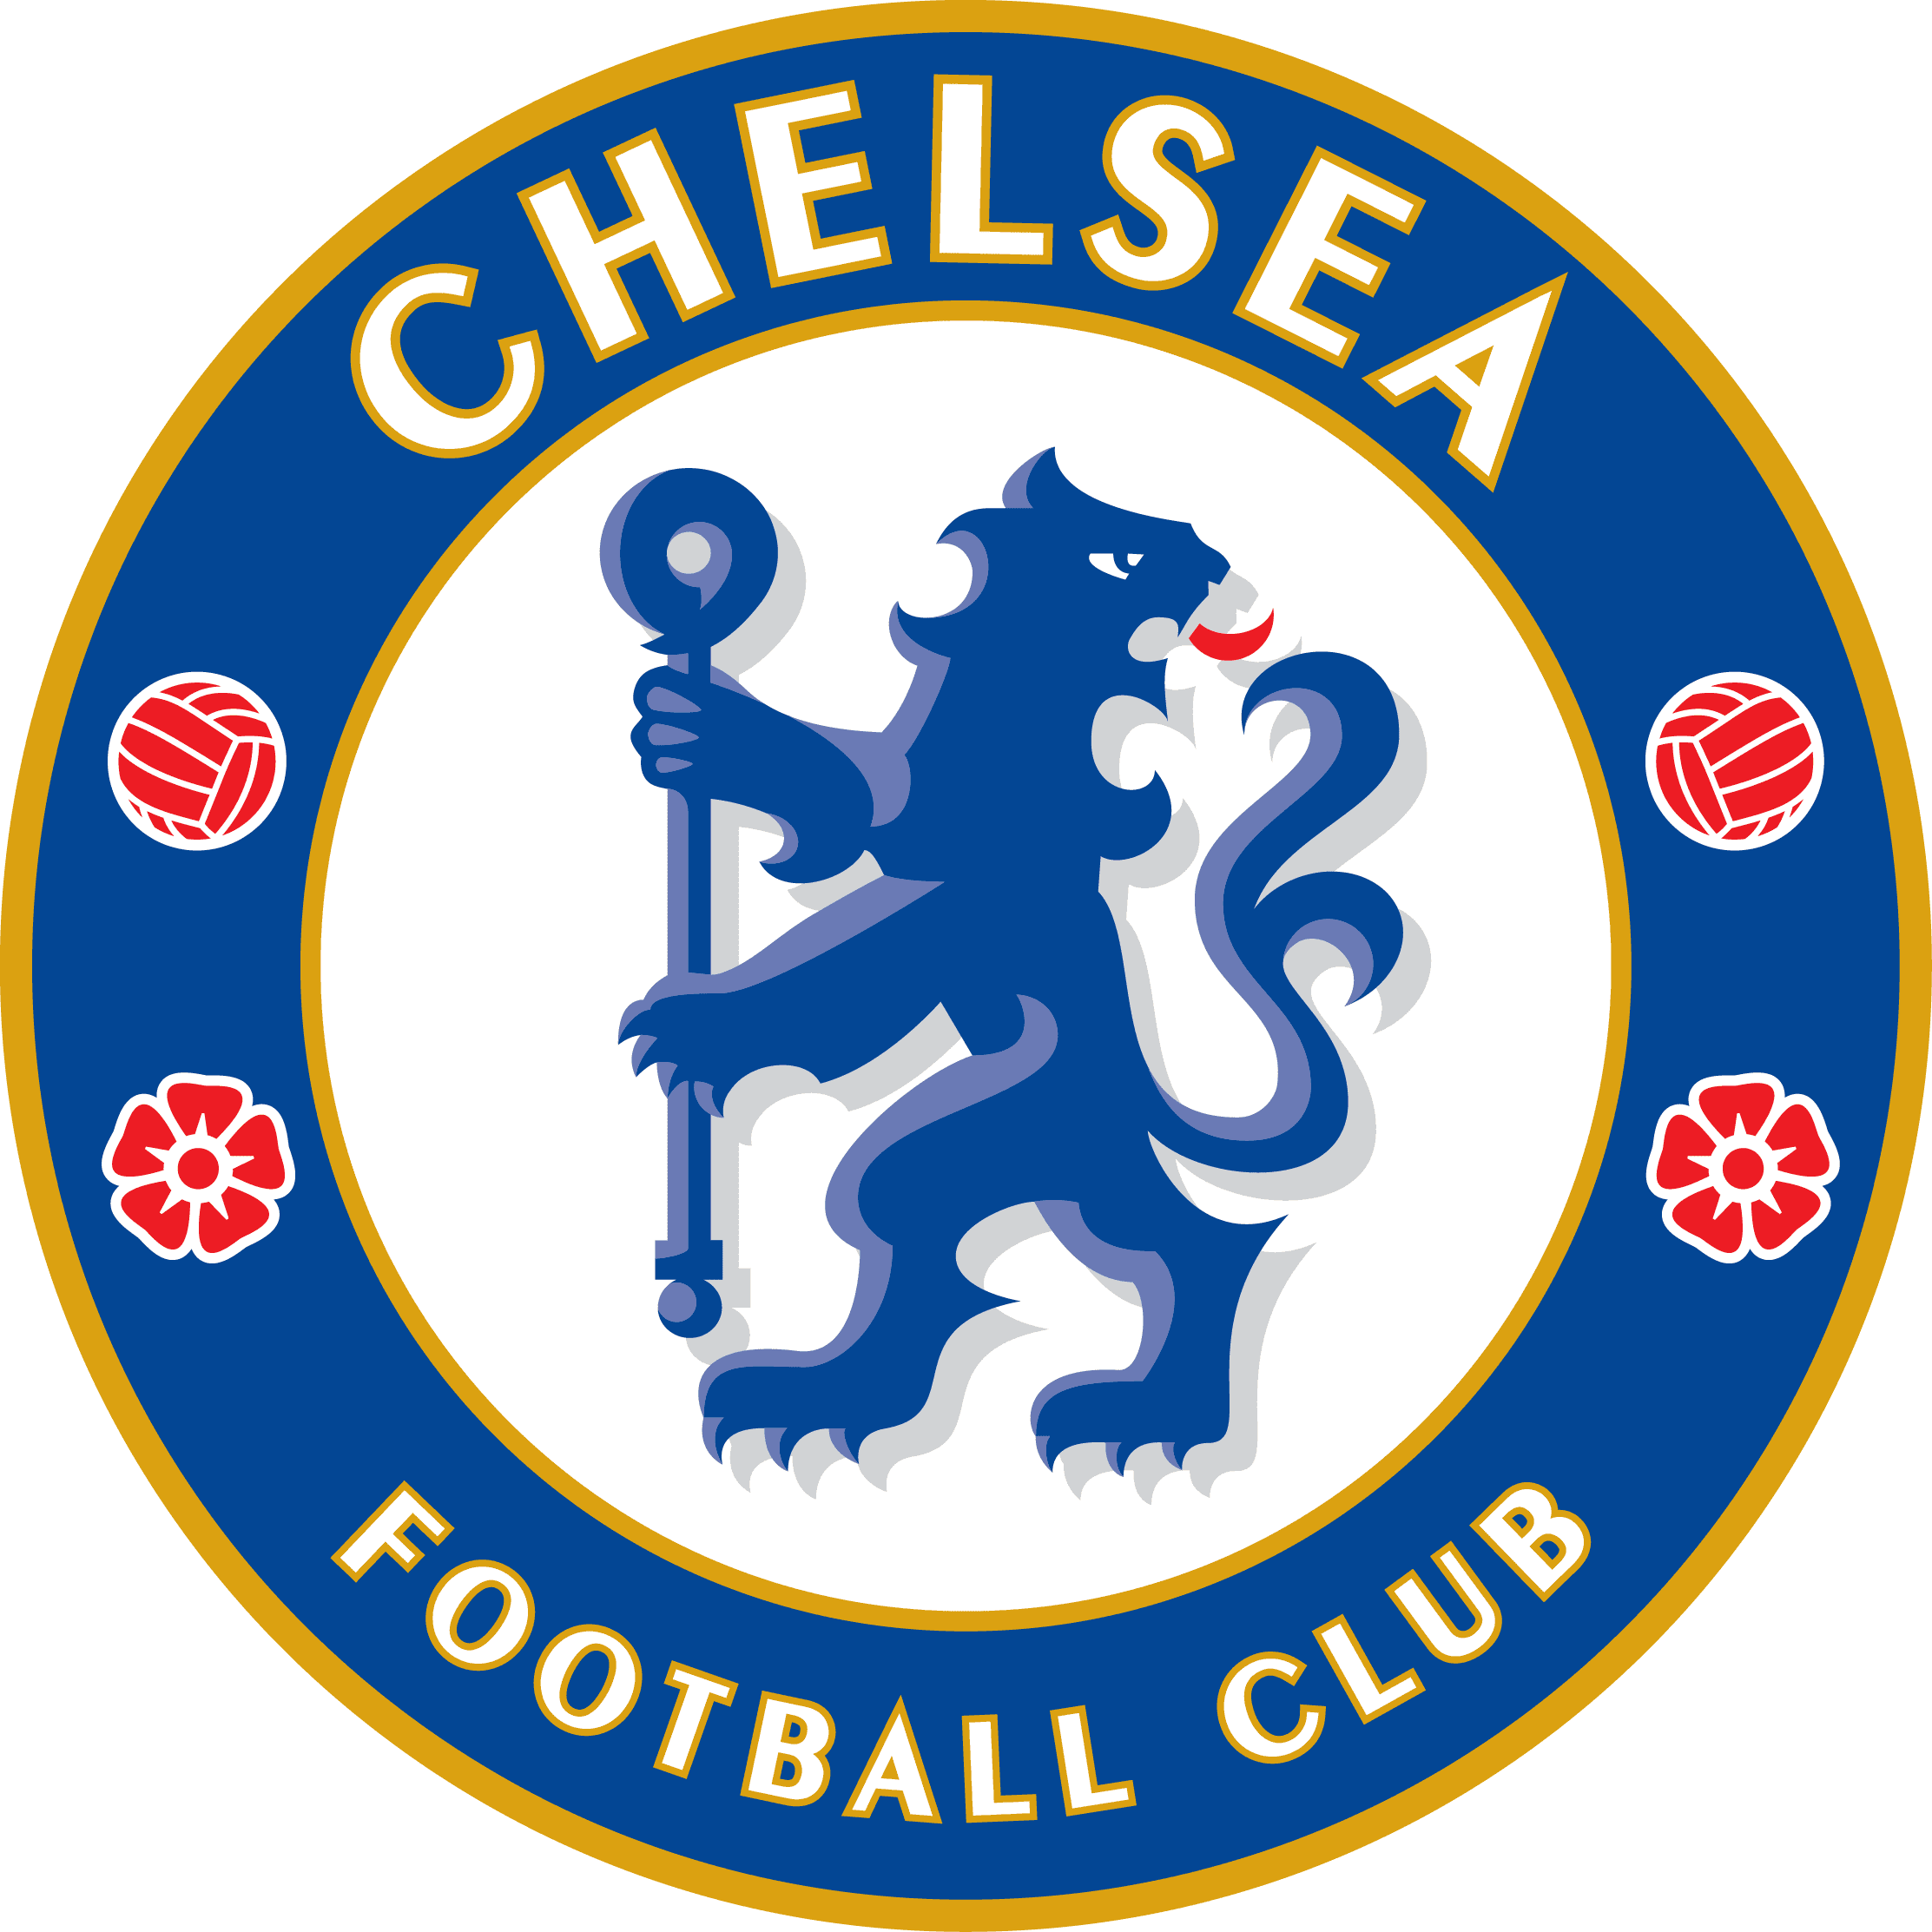 Chelsea Football Club Logo [chelseafc.com] Download Vector.